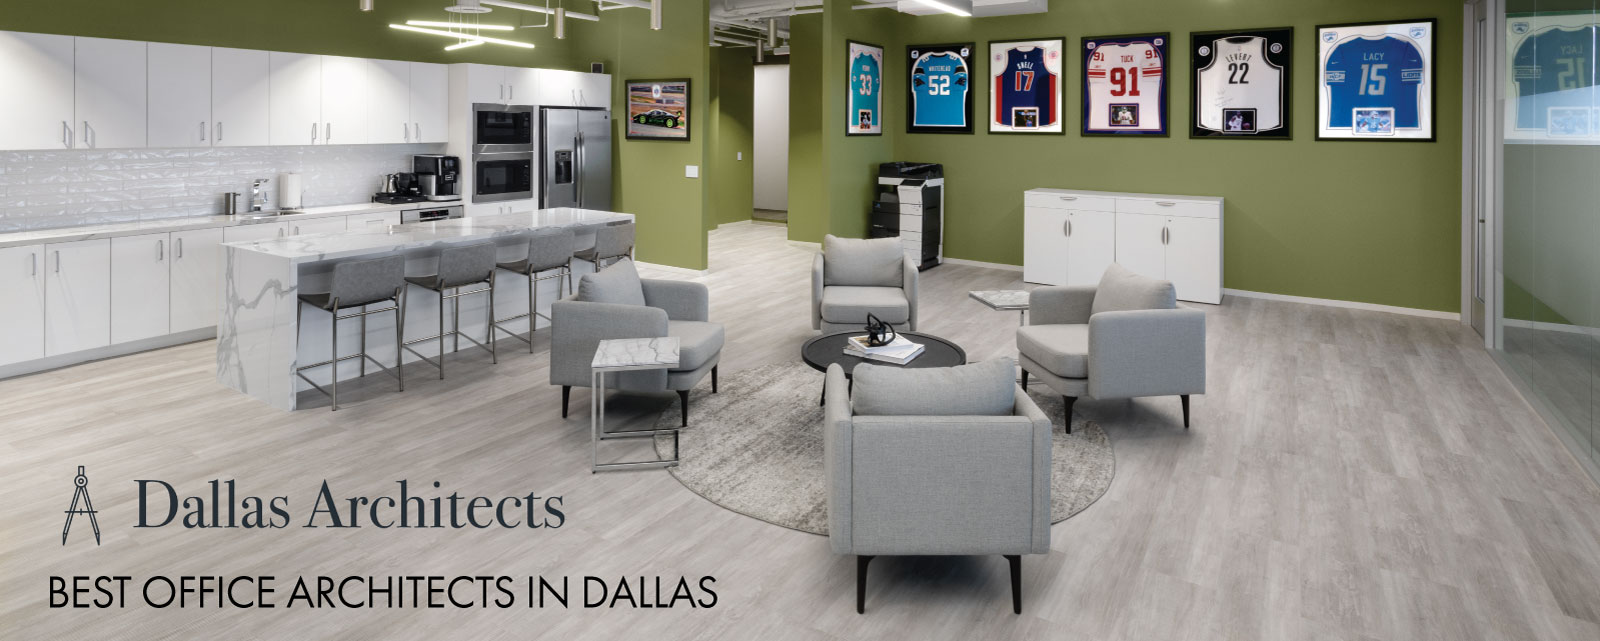 Best Office Architects Dallas – Dallas Architect